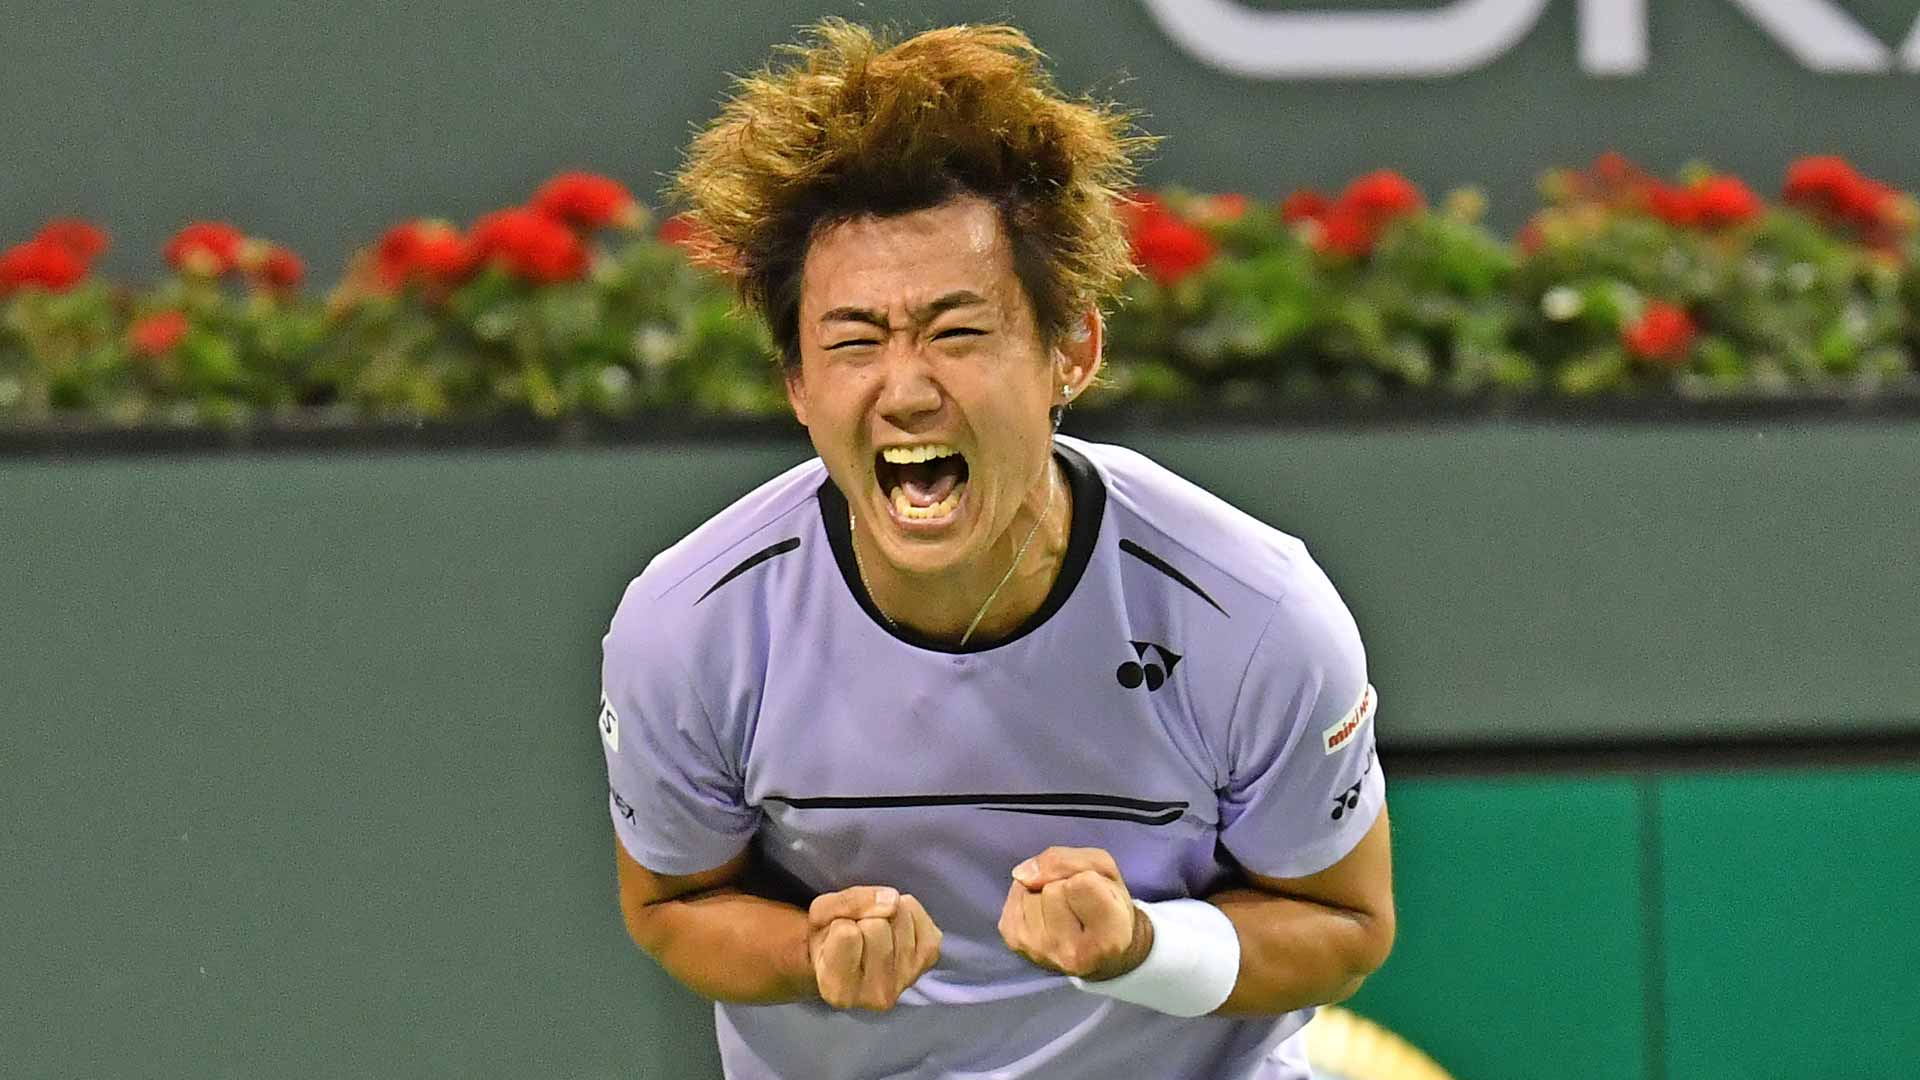 <a href='https://www.atptour.com/en/players/yoshihito-nishioka/n732/overview'>Yoshihito Nishioka</a> celebrates his third-round win at the 2019 <a href='https://www.atptour.com/en/tournaments/indian-wells/404/overview'>BNP Paribas Open</a>.